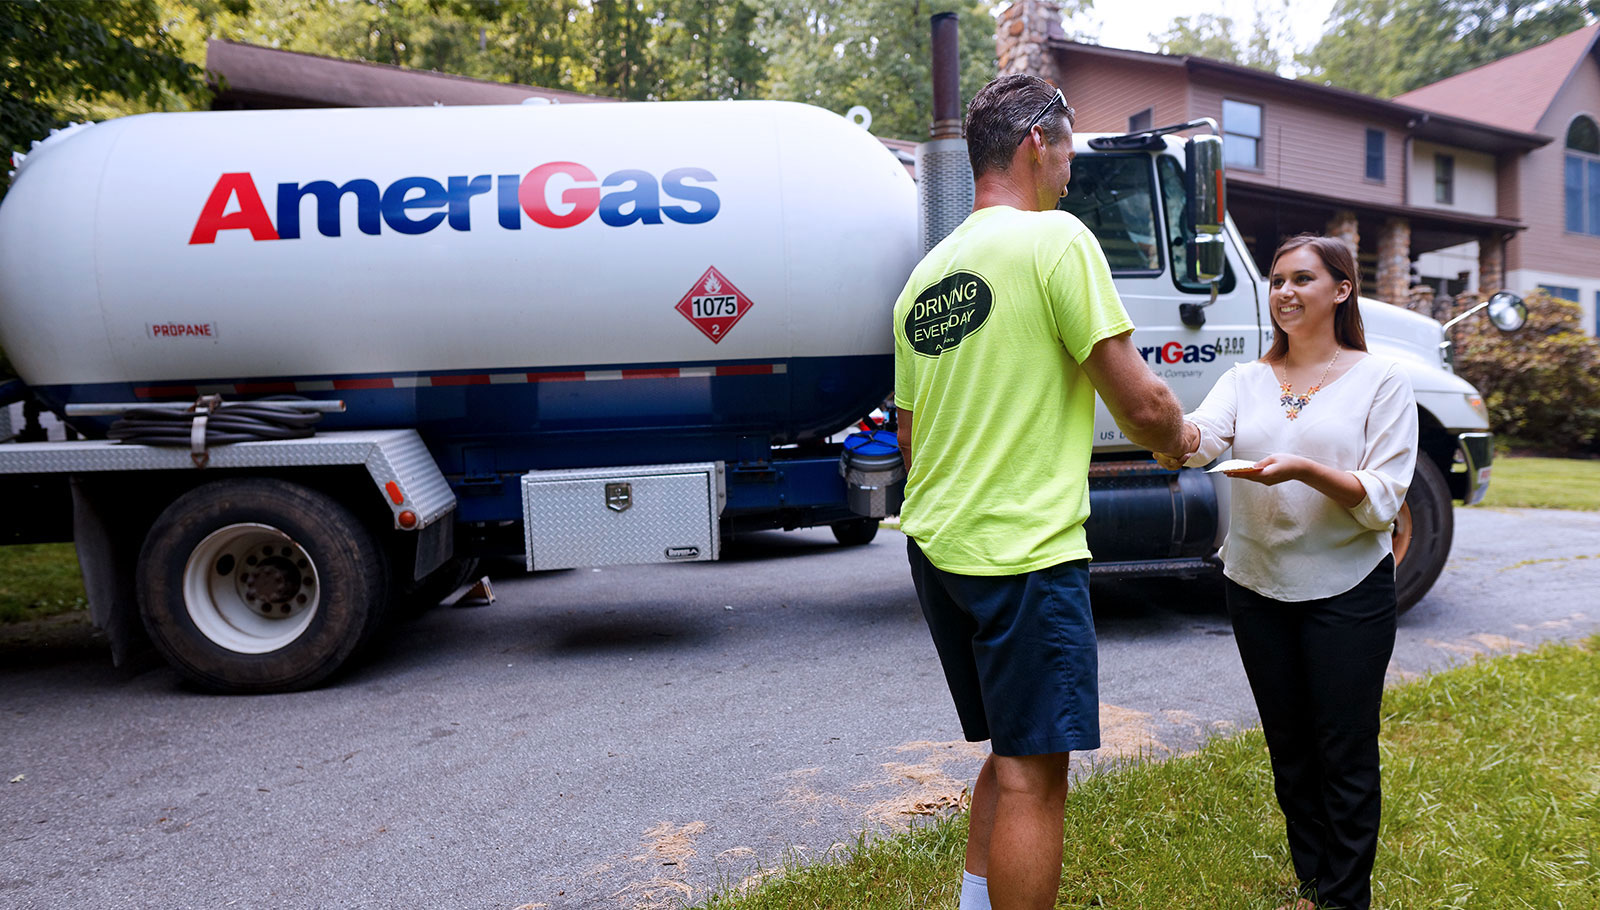 Man and woman shake hands in front of Amerigas truck